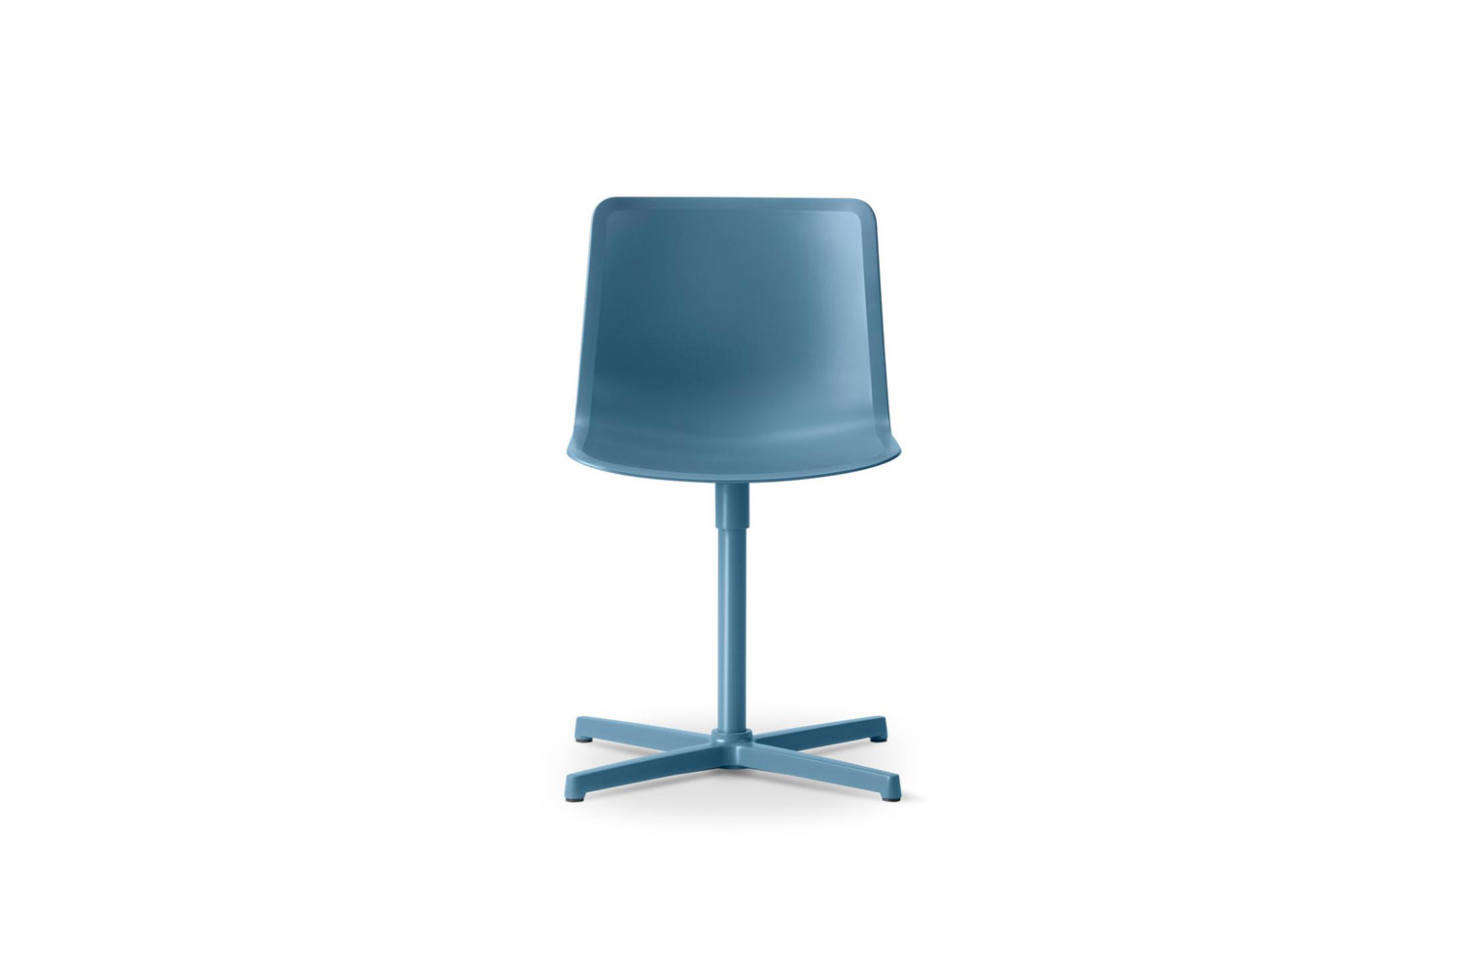 office chair not on wheels belmont dental chairs prices 10 easy pieces modern desk without remodelista the welling ludvik pato veneer swivel is available in a range of color options